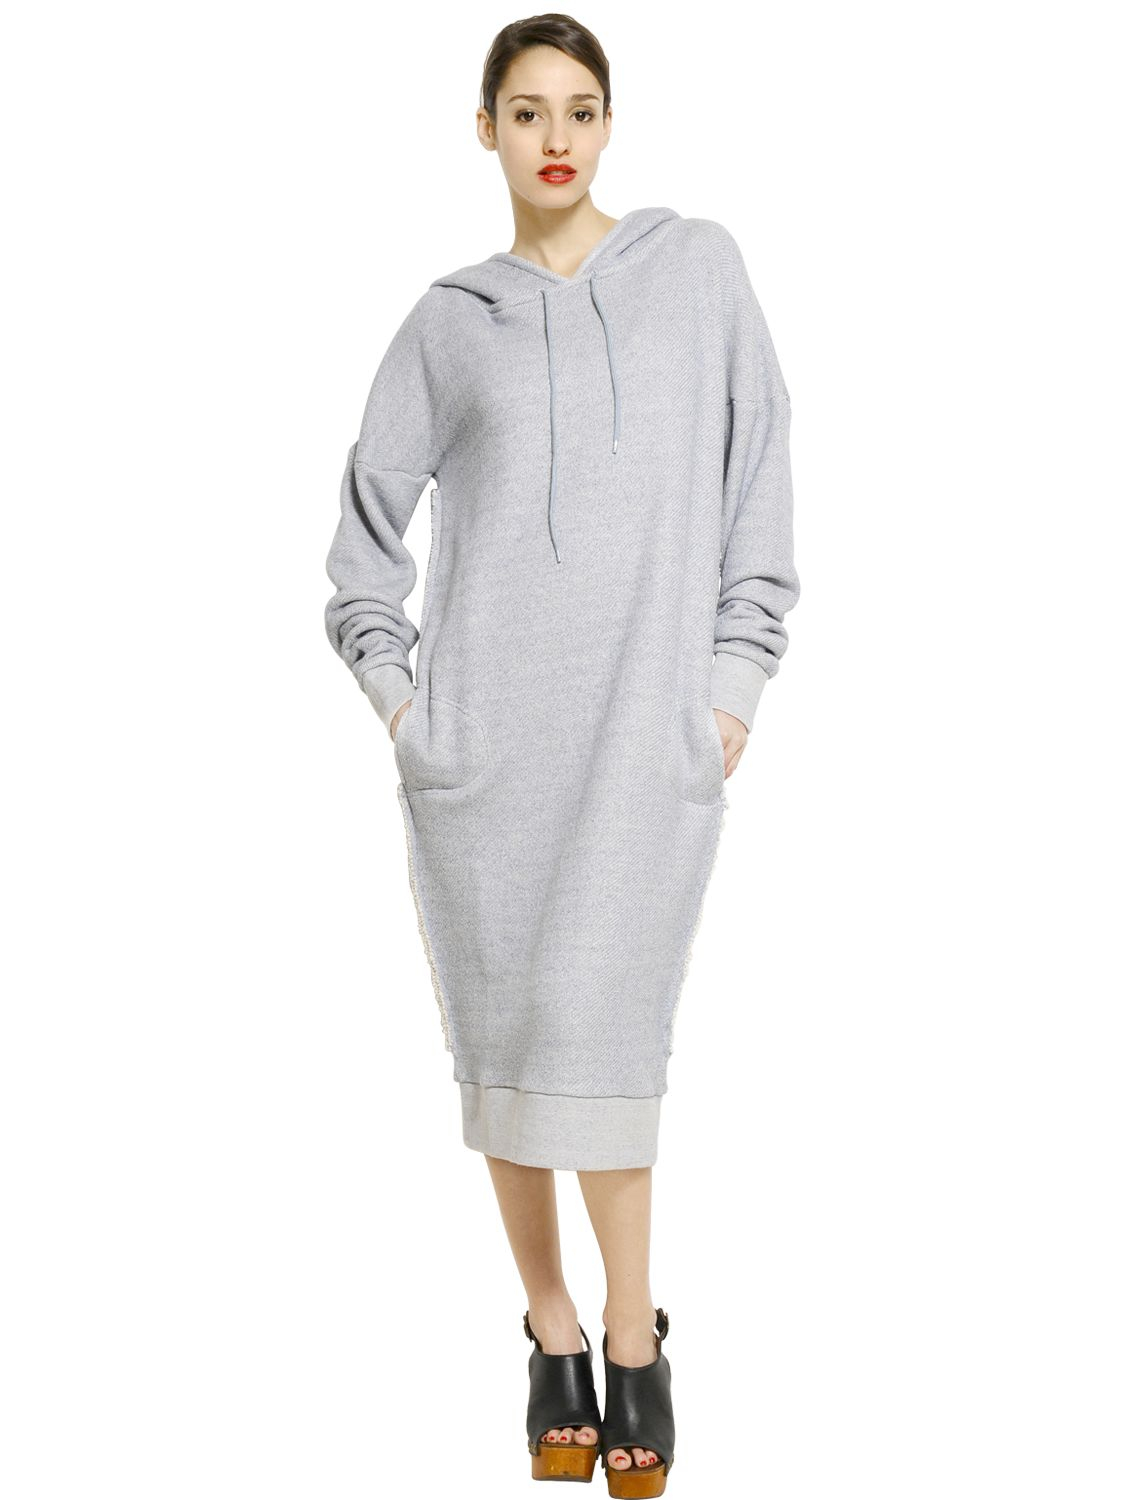 Mes Demoiselles Hooded Cotton Fleece Sweatshirt Dress in Blue - Lyst b23cae301e